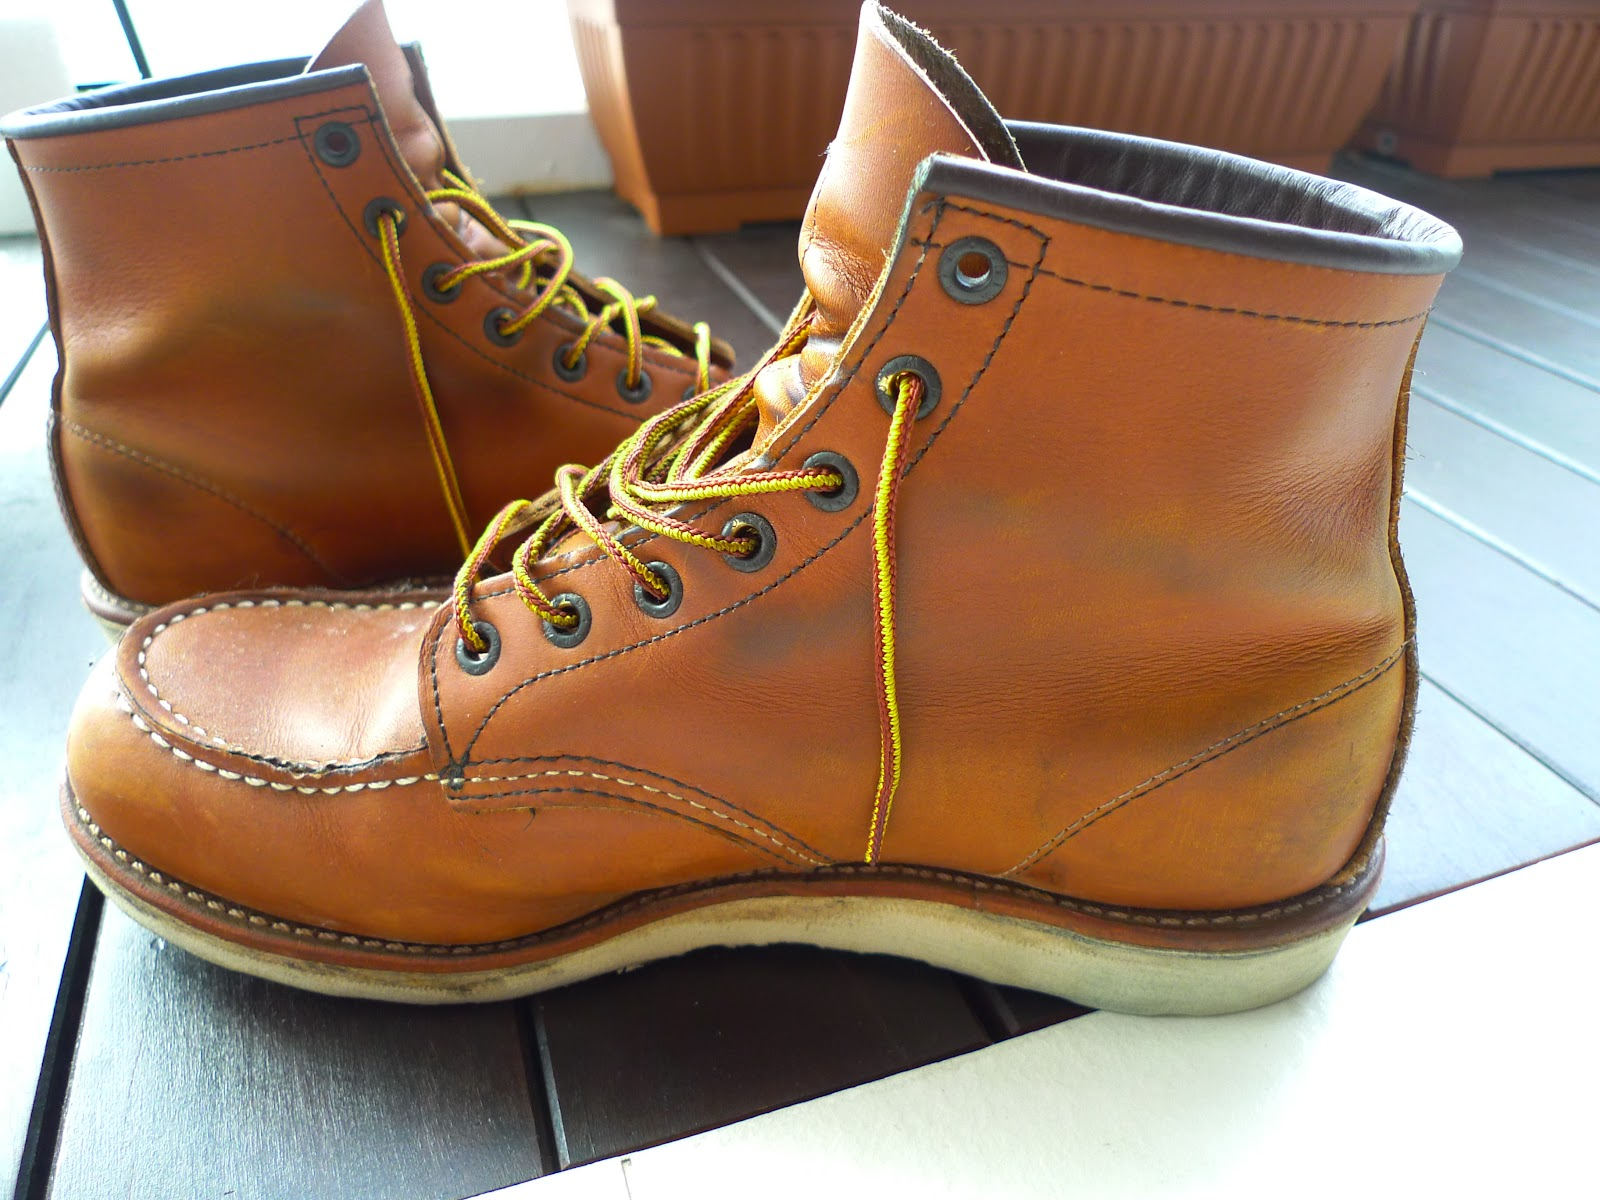 Goody Leathery: Red Wing 875 (after 1 month)